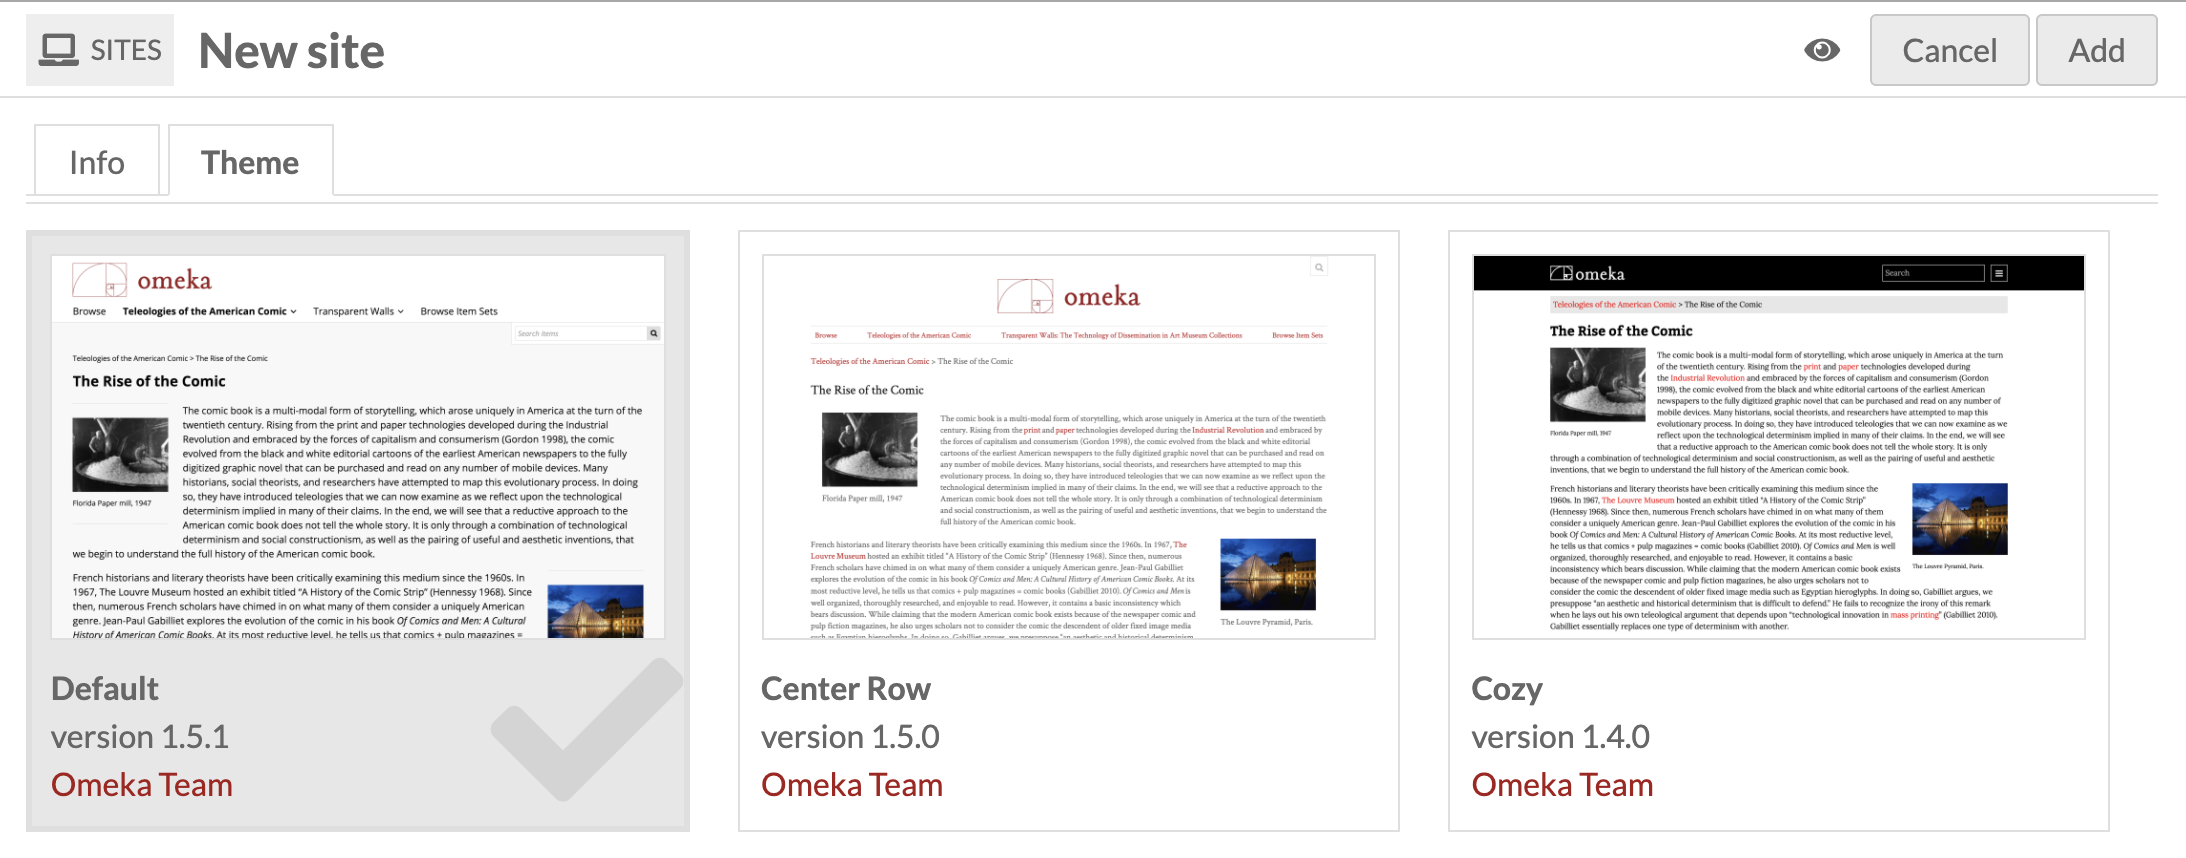 Sites Management - Omeka S User Manual